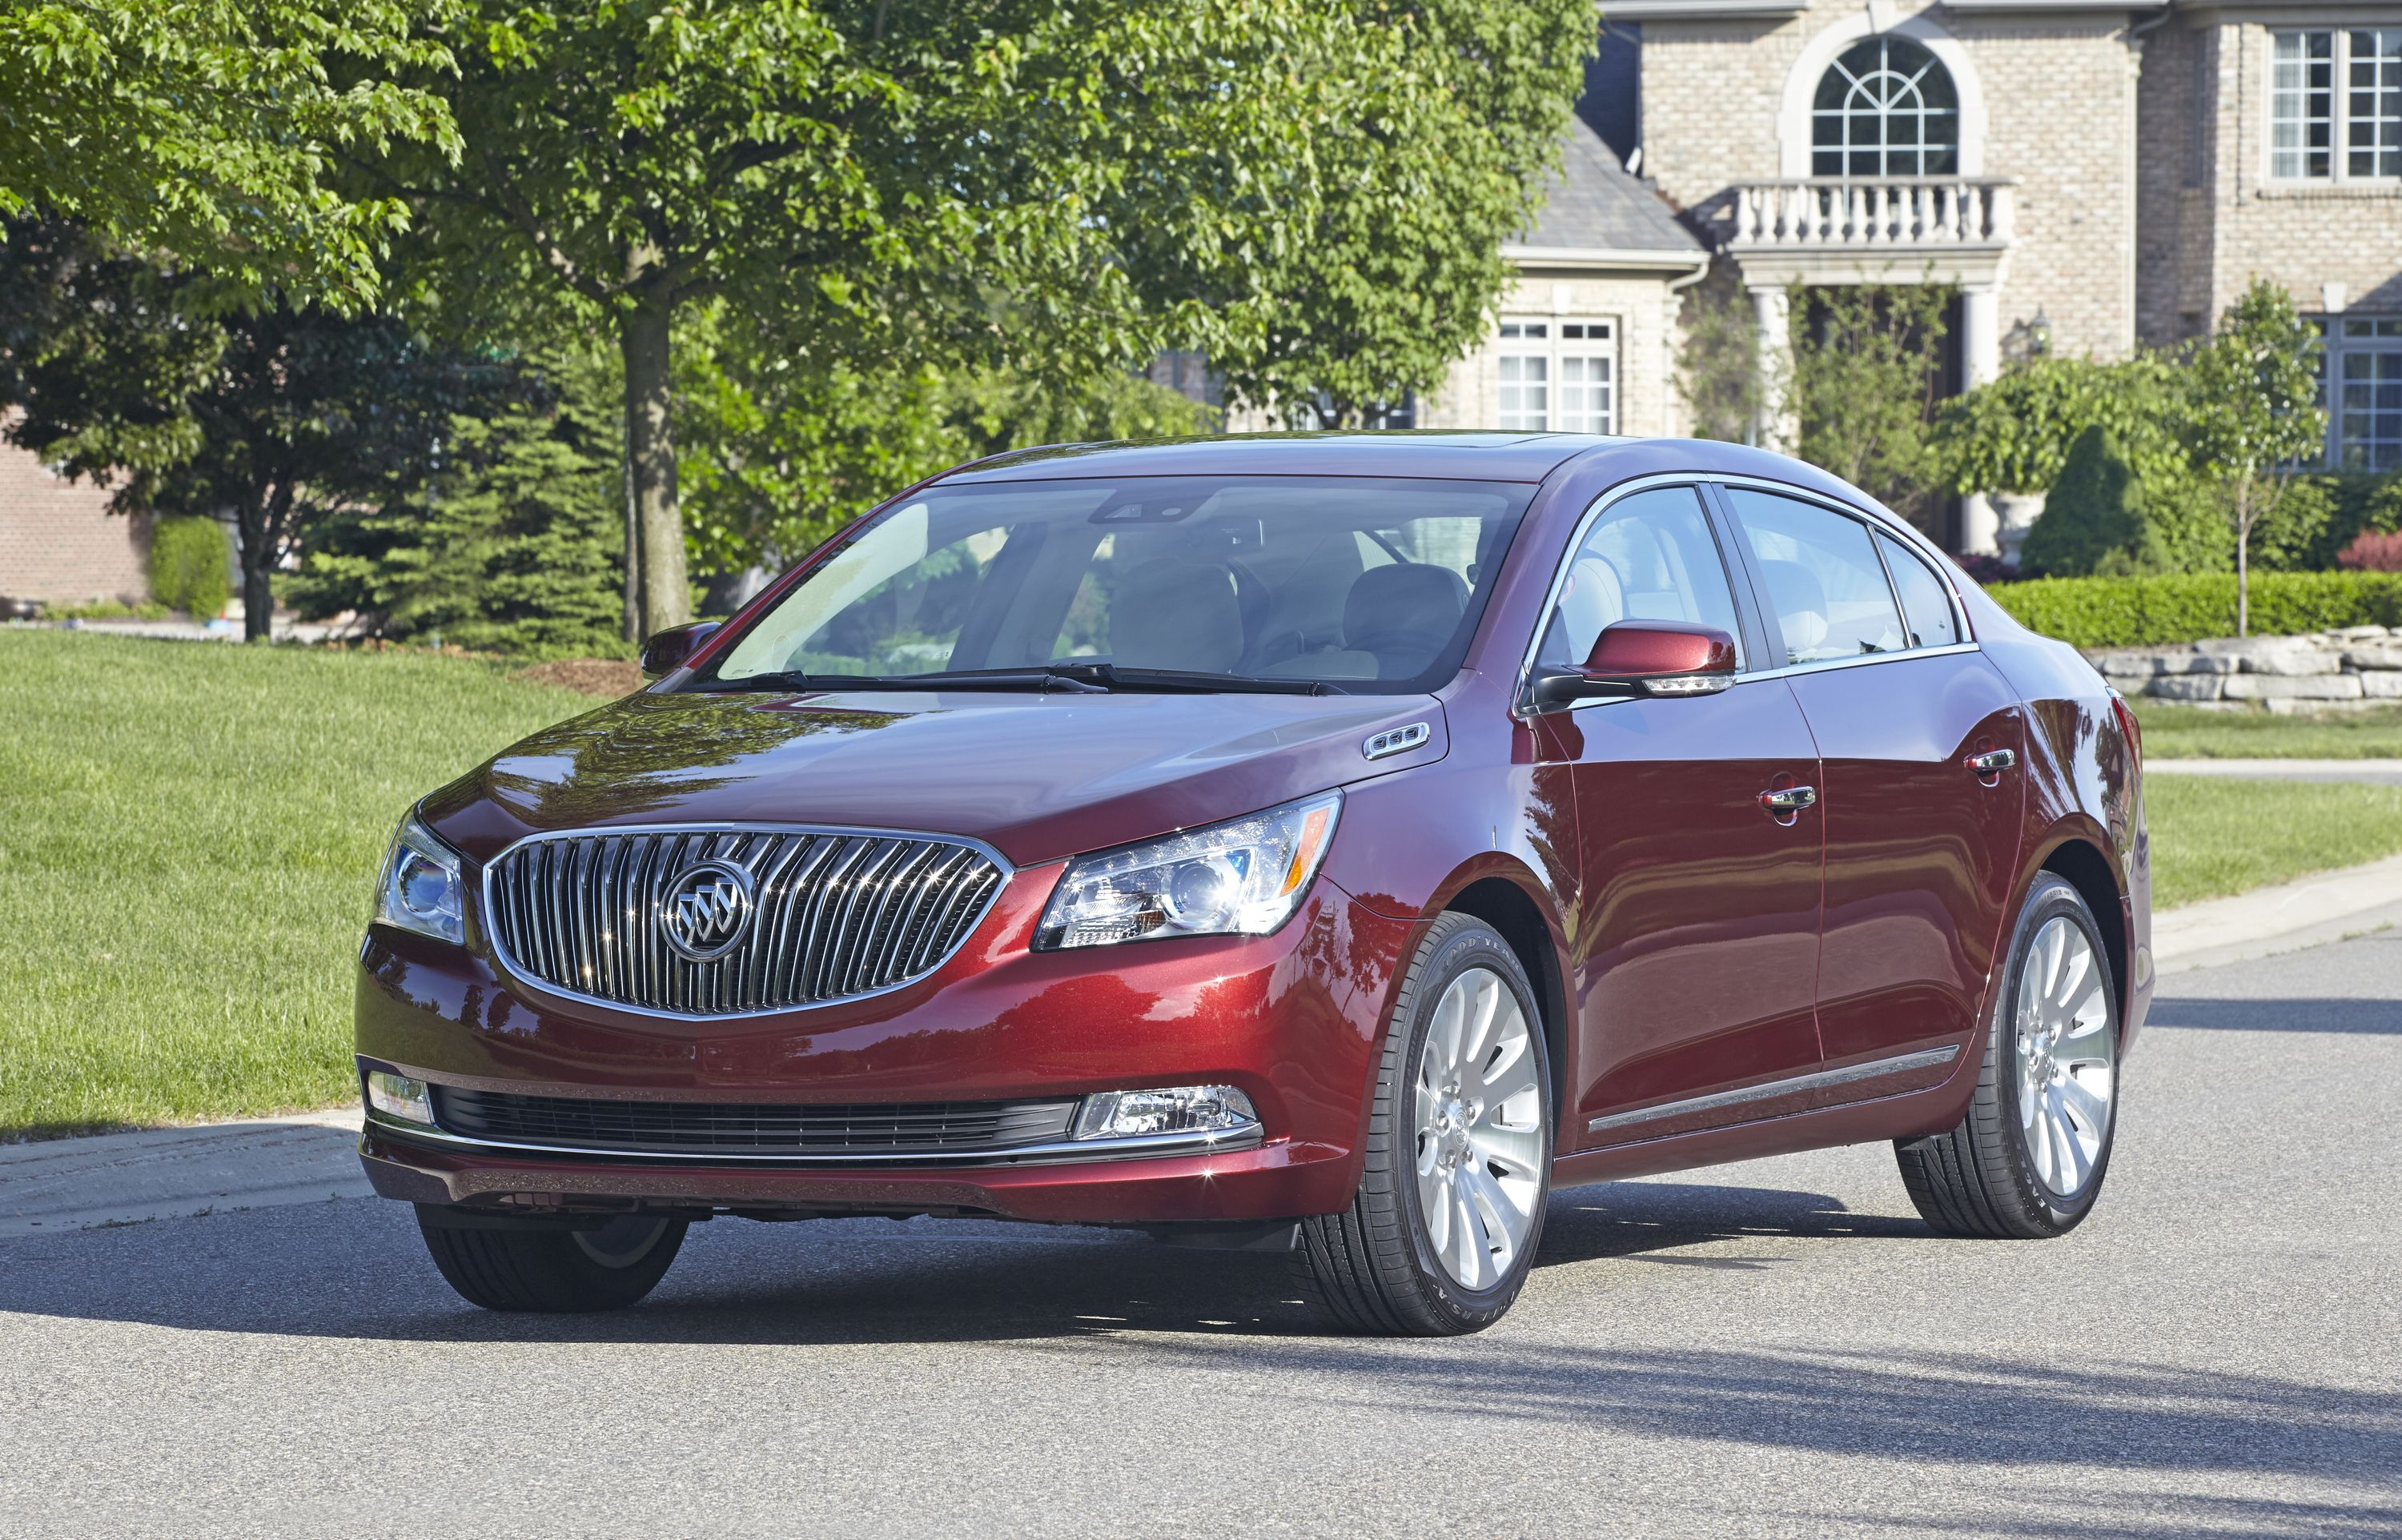 2014 buick lacrosse 1sl awd with baroque red metallic exterior color and 19 alloy wheels